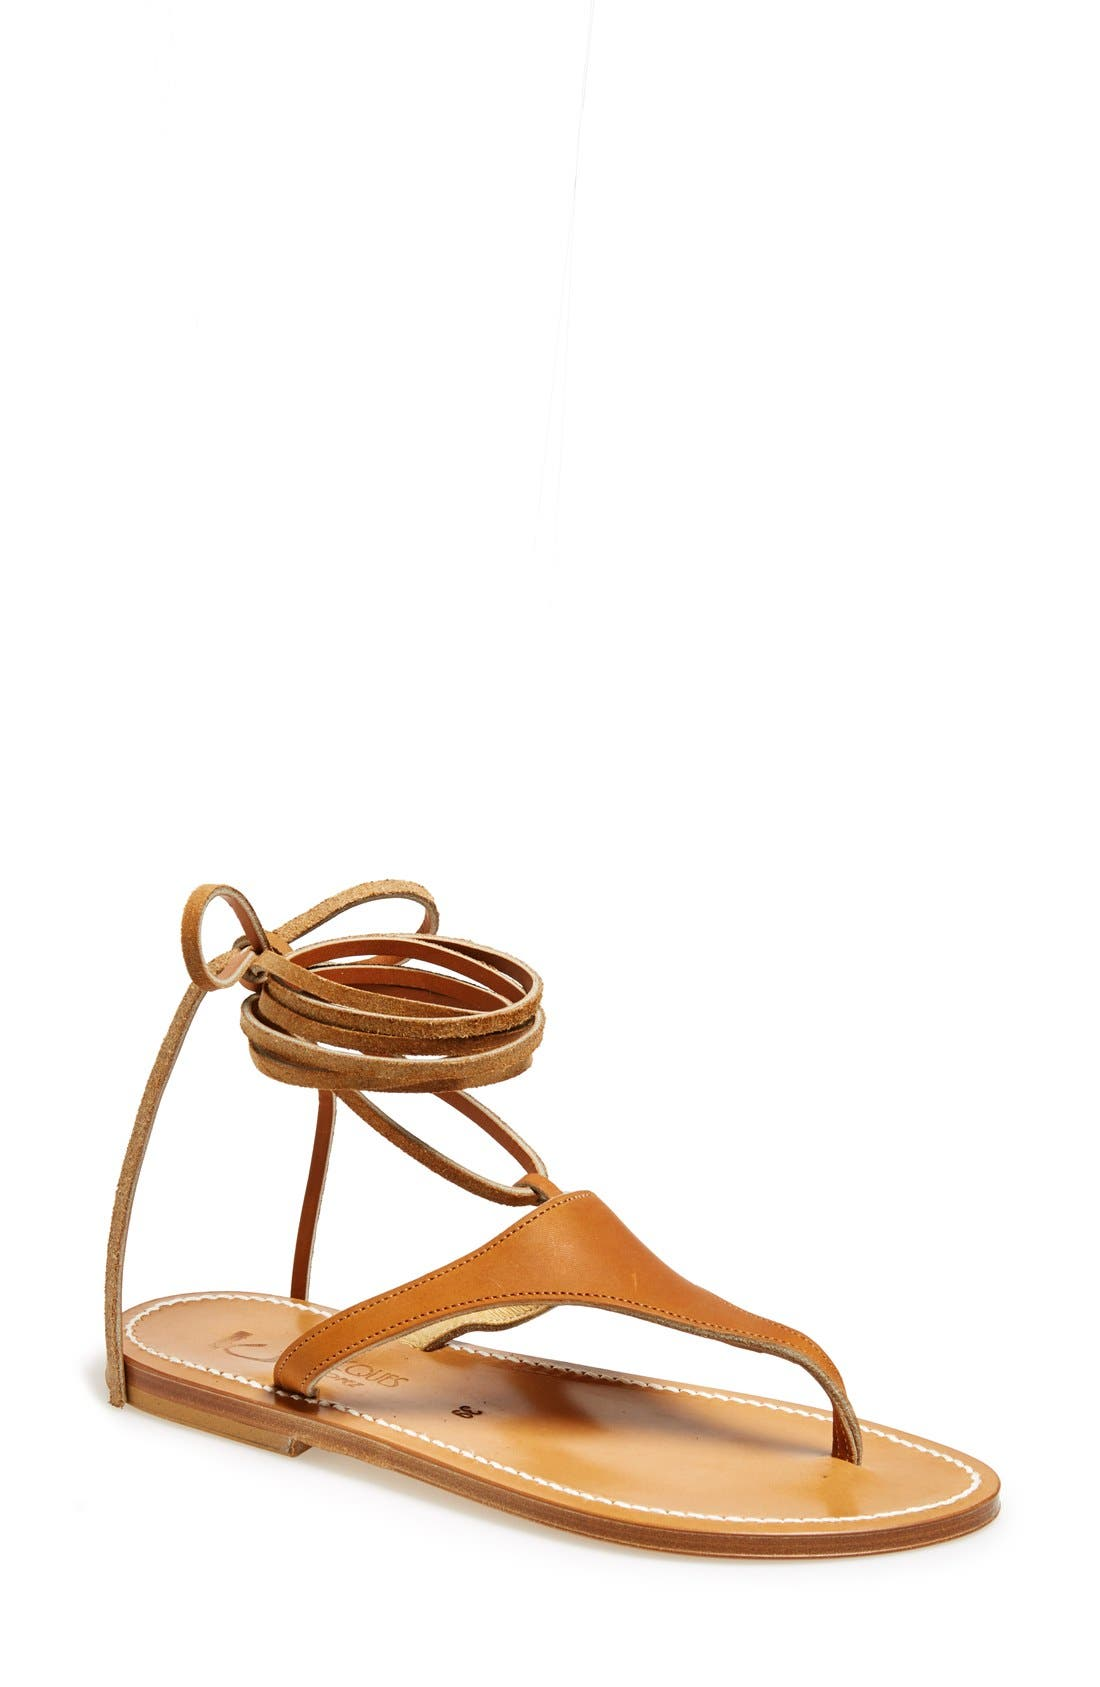 Alternate Image 1 Selected - K.Jacques St. Tropez Ankle Wrap Thong Sandal (Women)